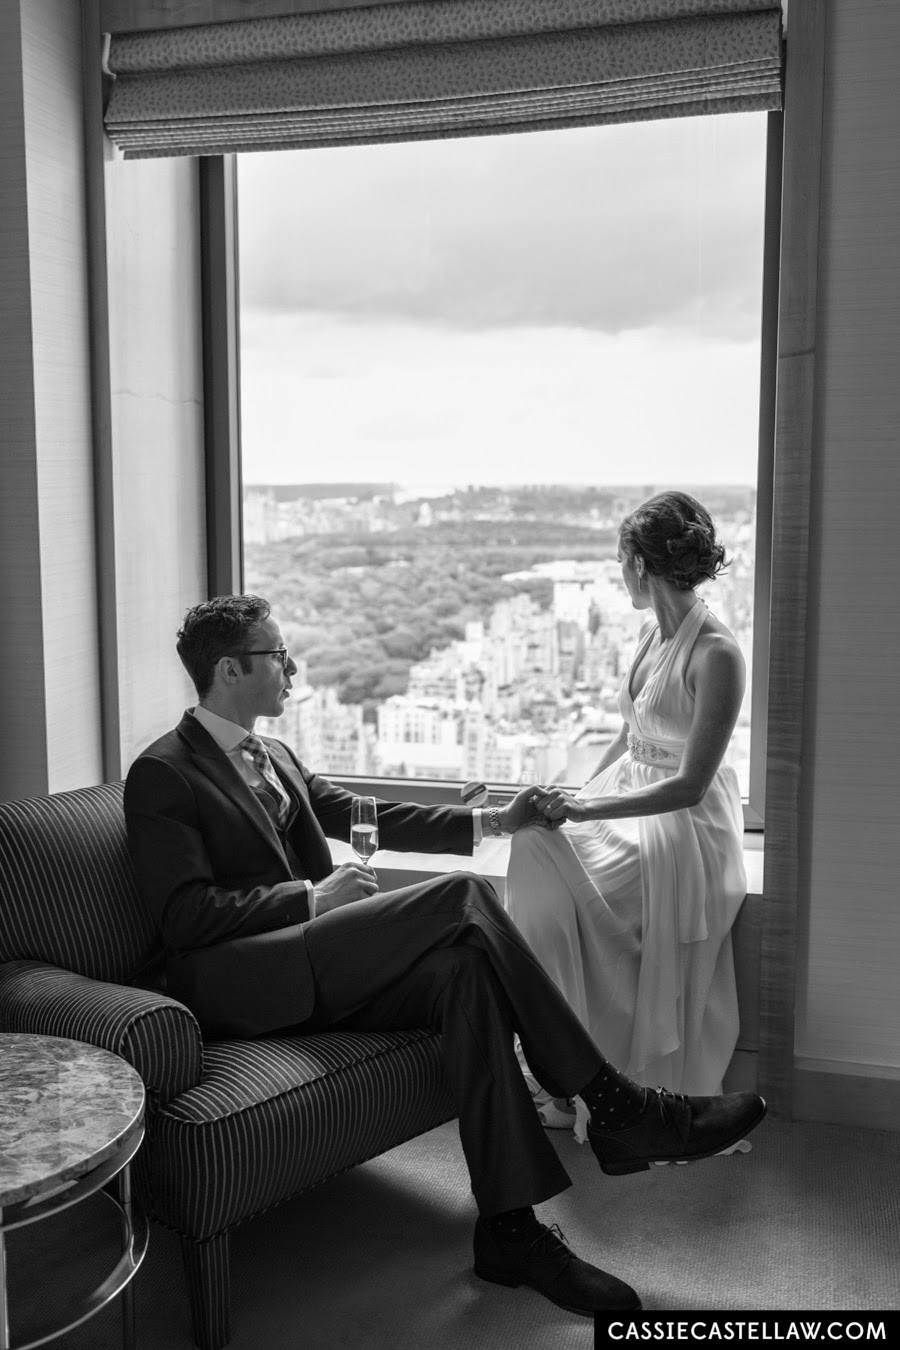 black and white portrait of bride and groom sitting by window overlooking Central Park. NYC Lifestyle wedding photography by Cassie Castellaw. www.cassiecastellaw.com